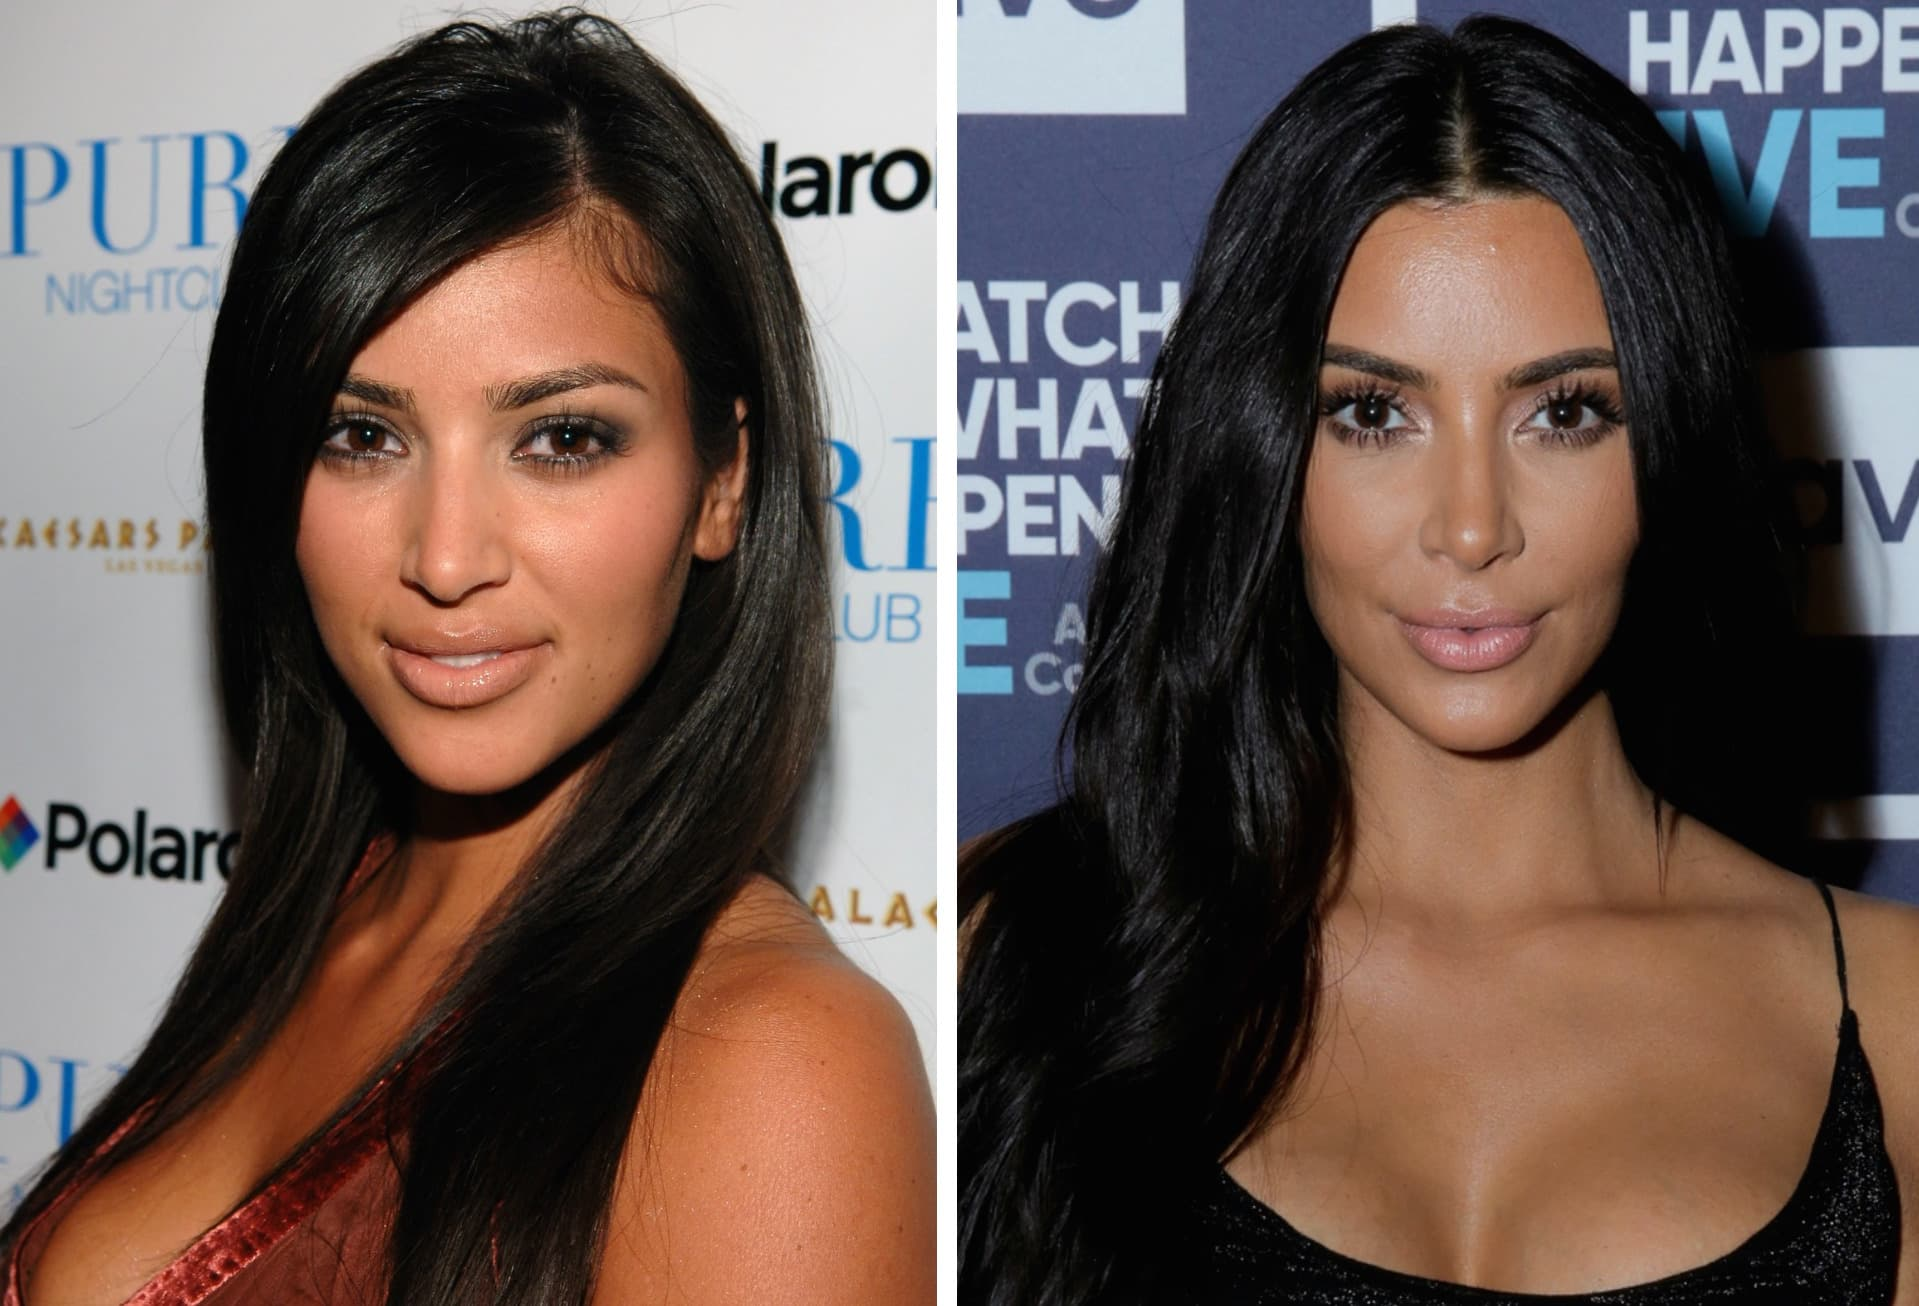 Bruce Jenner Plastic Surgery Before After 1